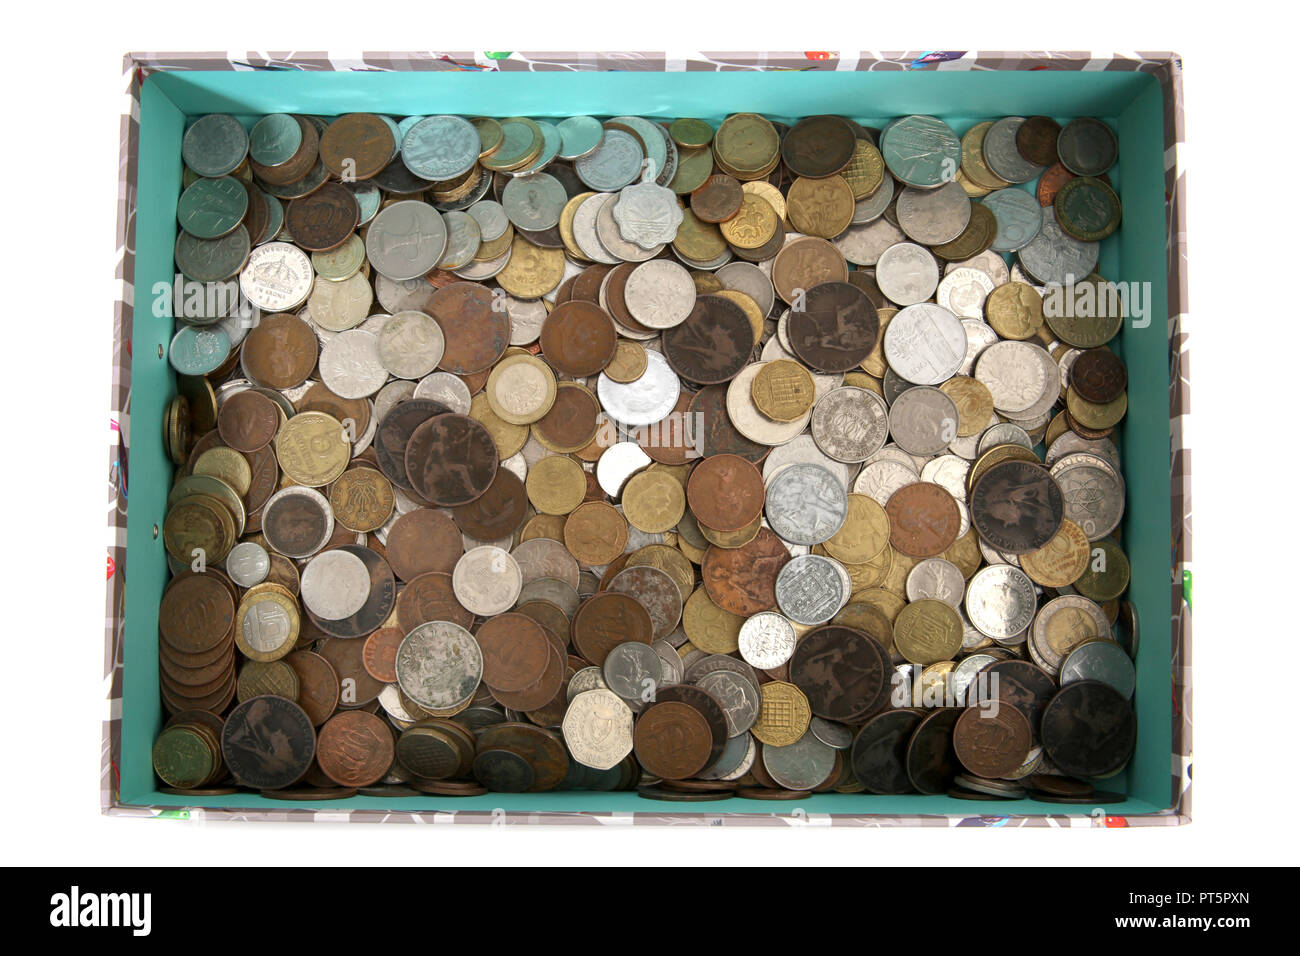 A collection of old world wide used coins. - Stock Image